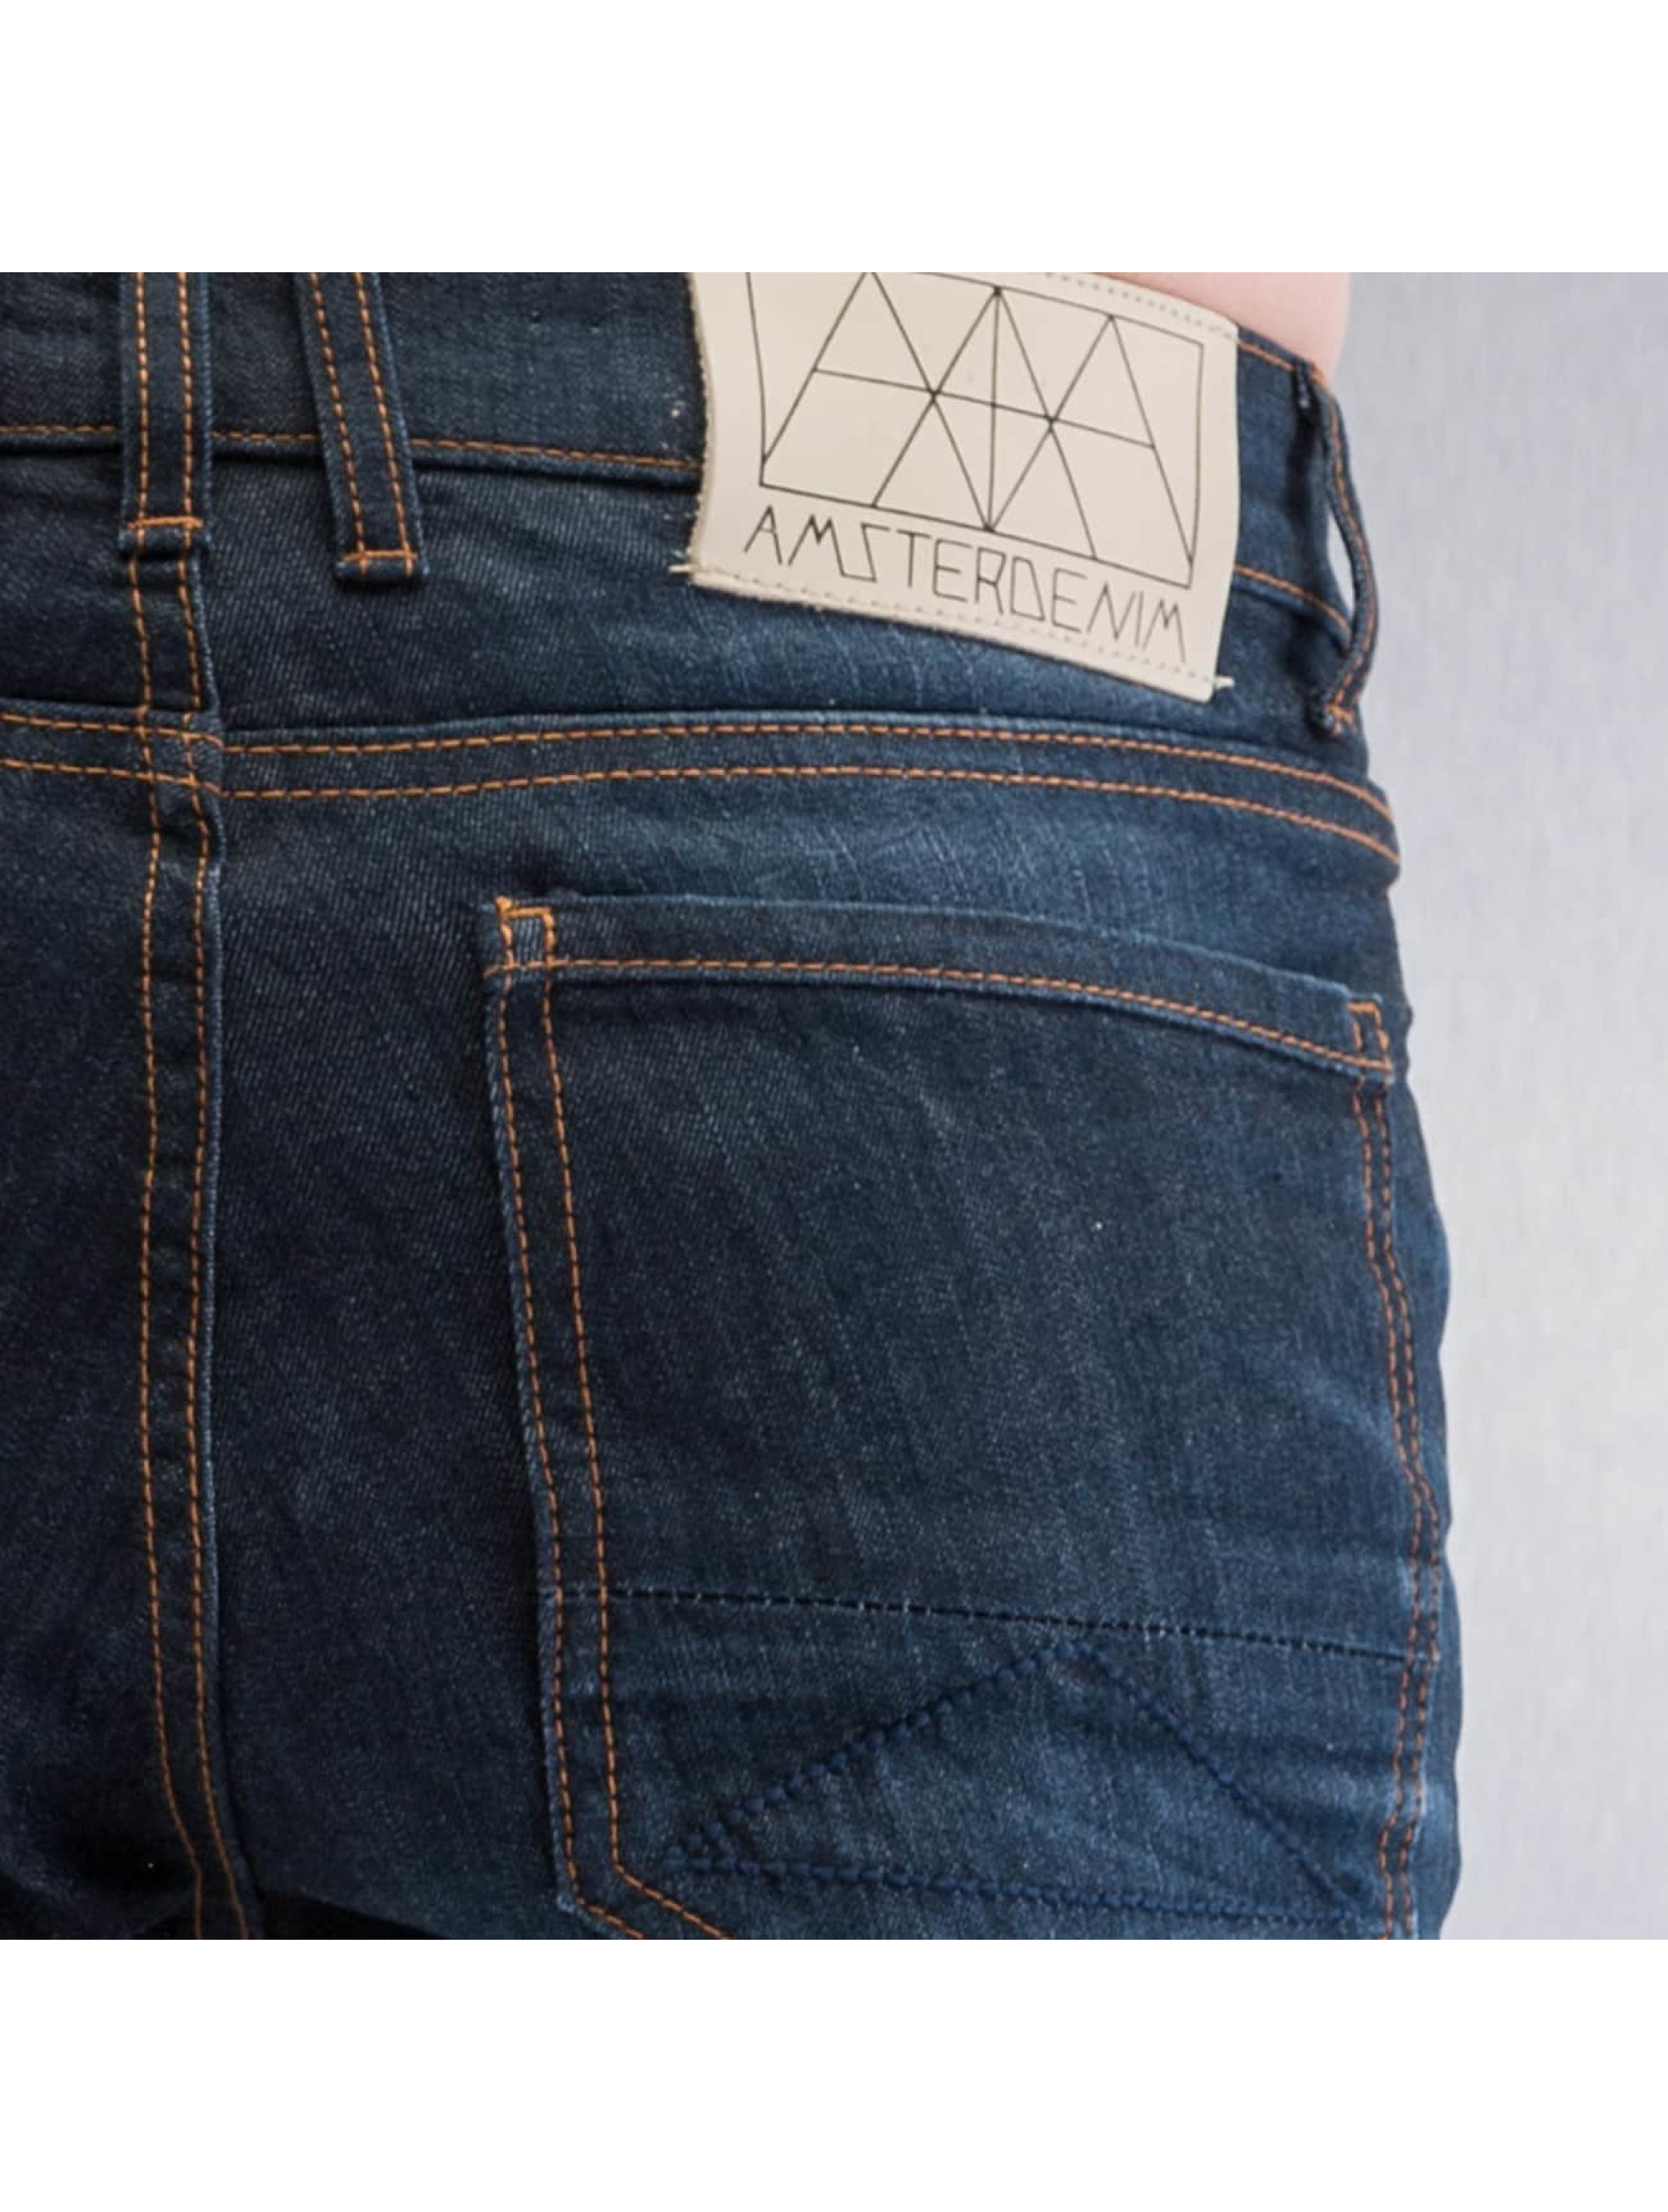 Amsterdenim Straight Fit Jeans Mar blue